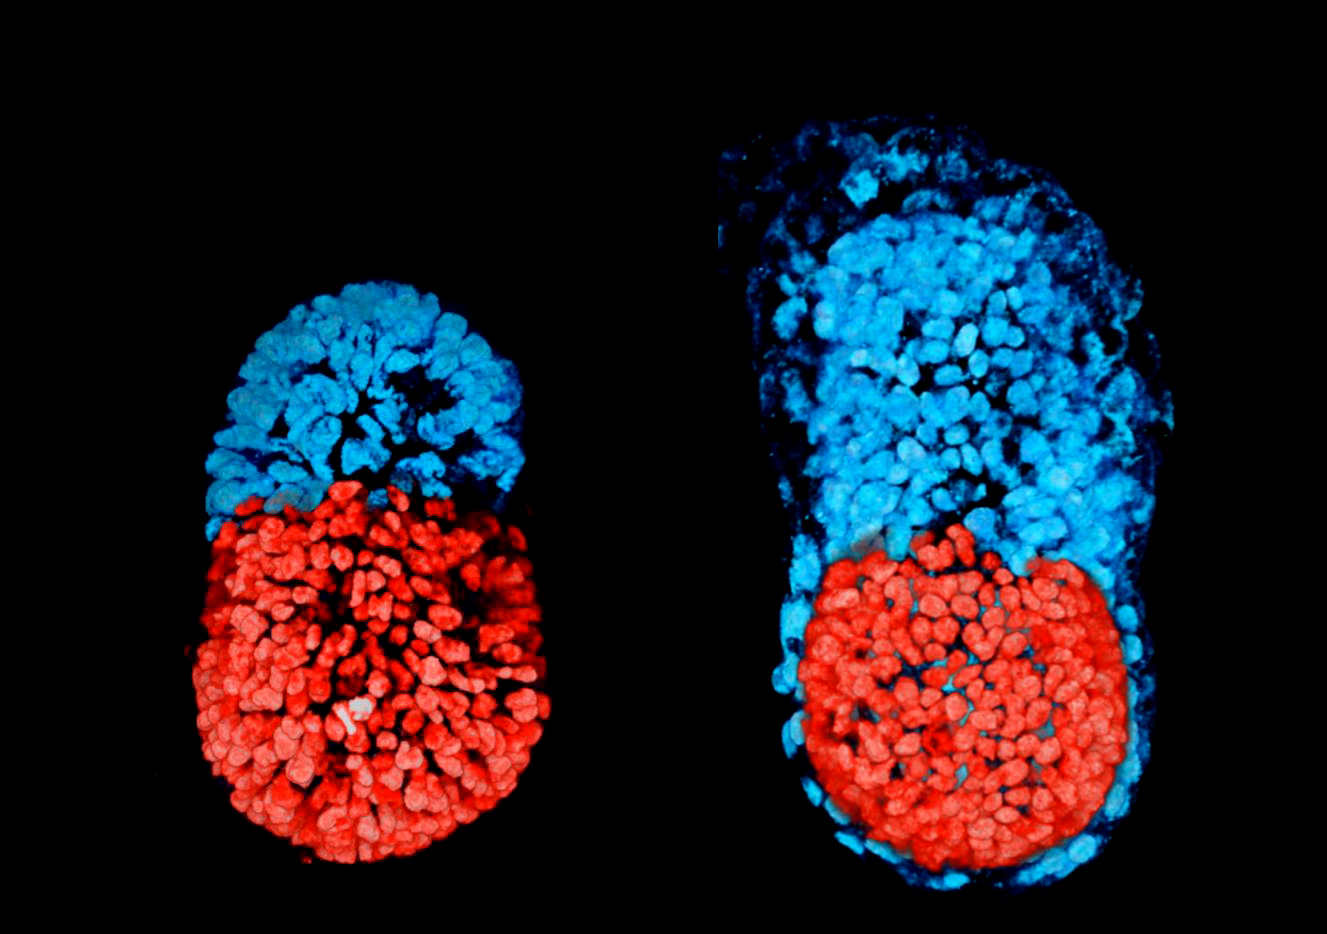 Scientists create artificial mouse embryo from stem cells